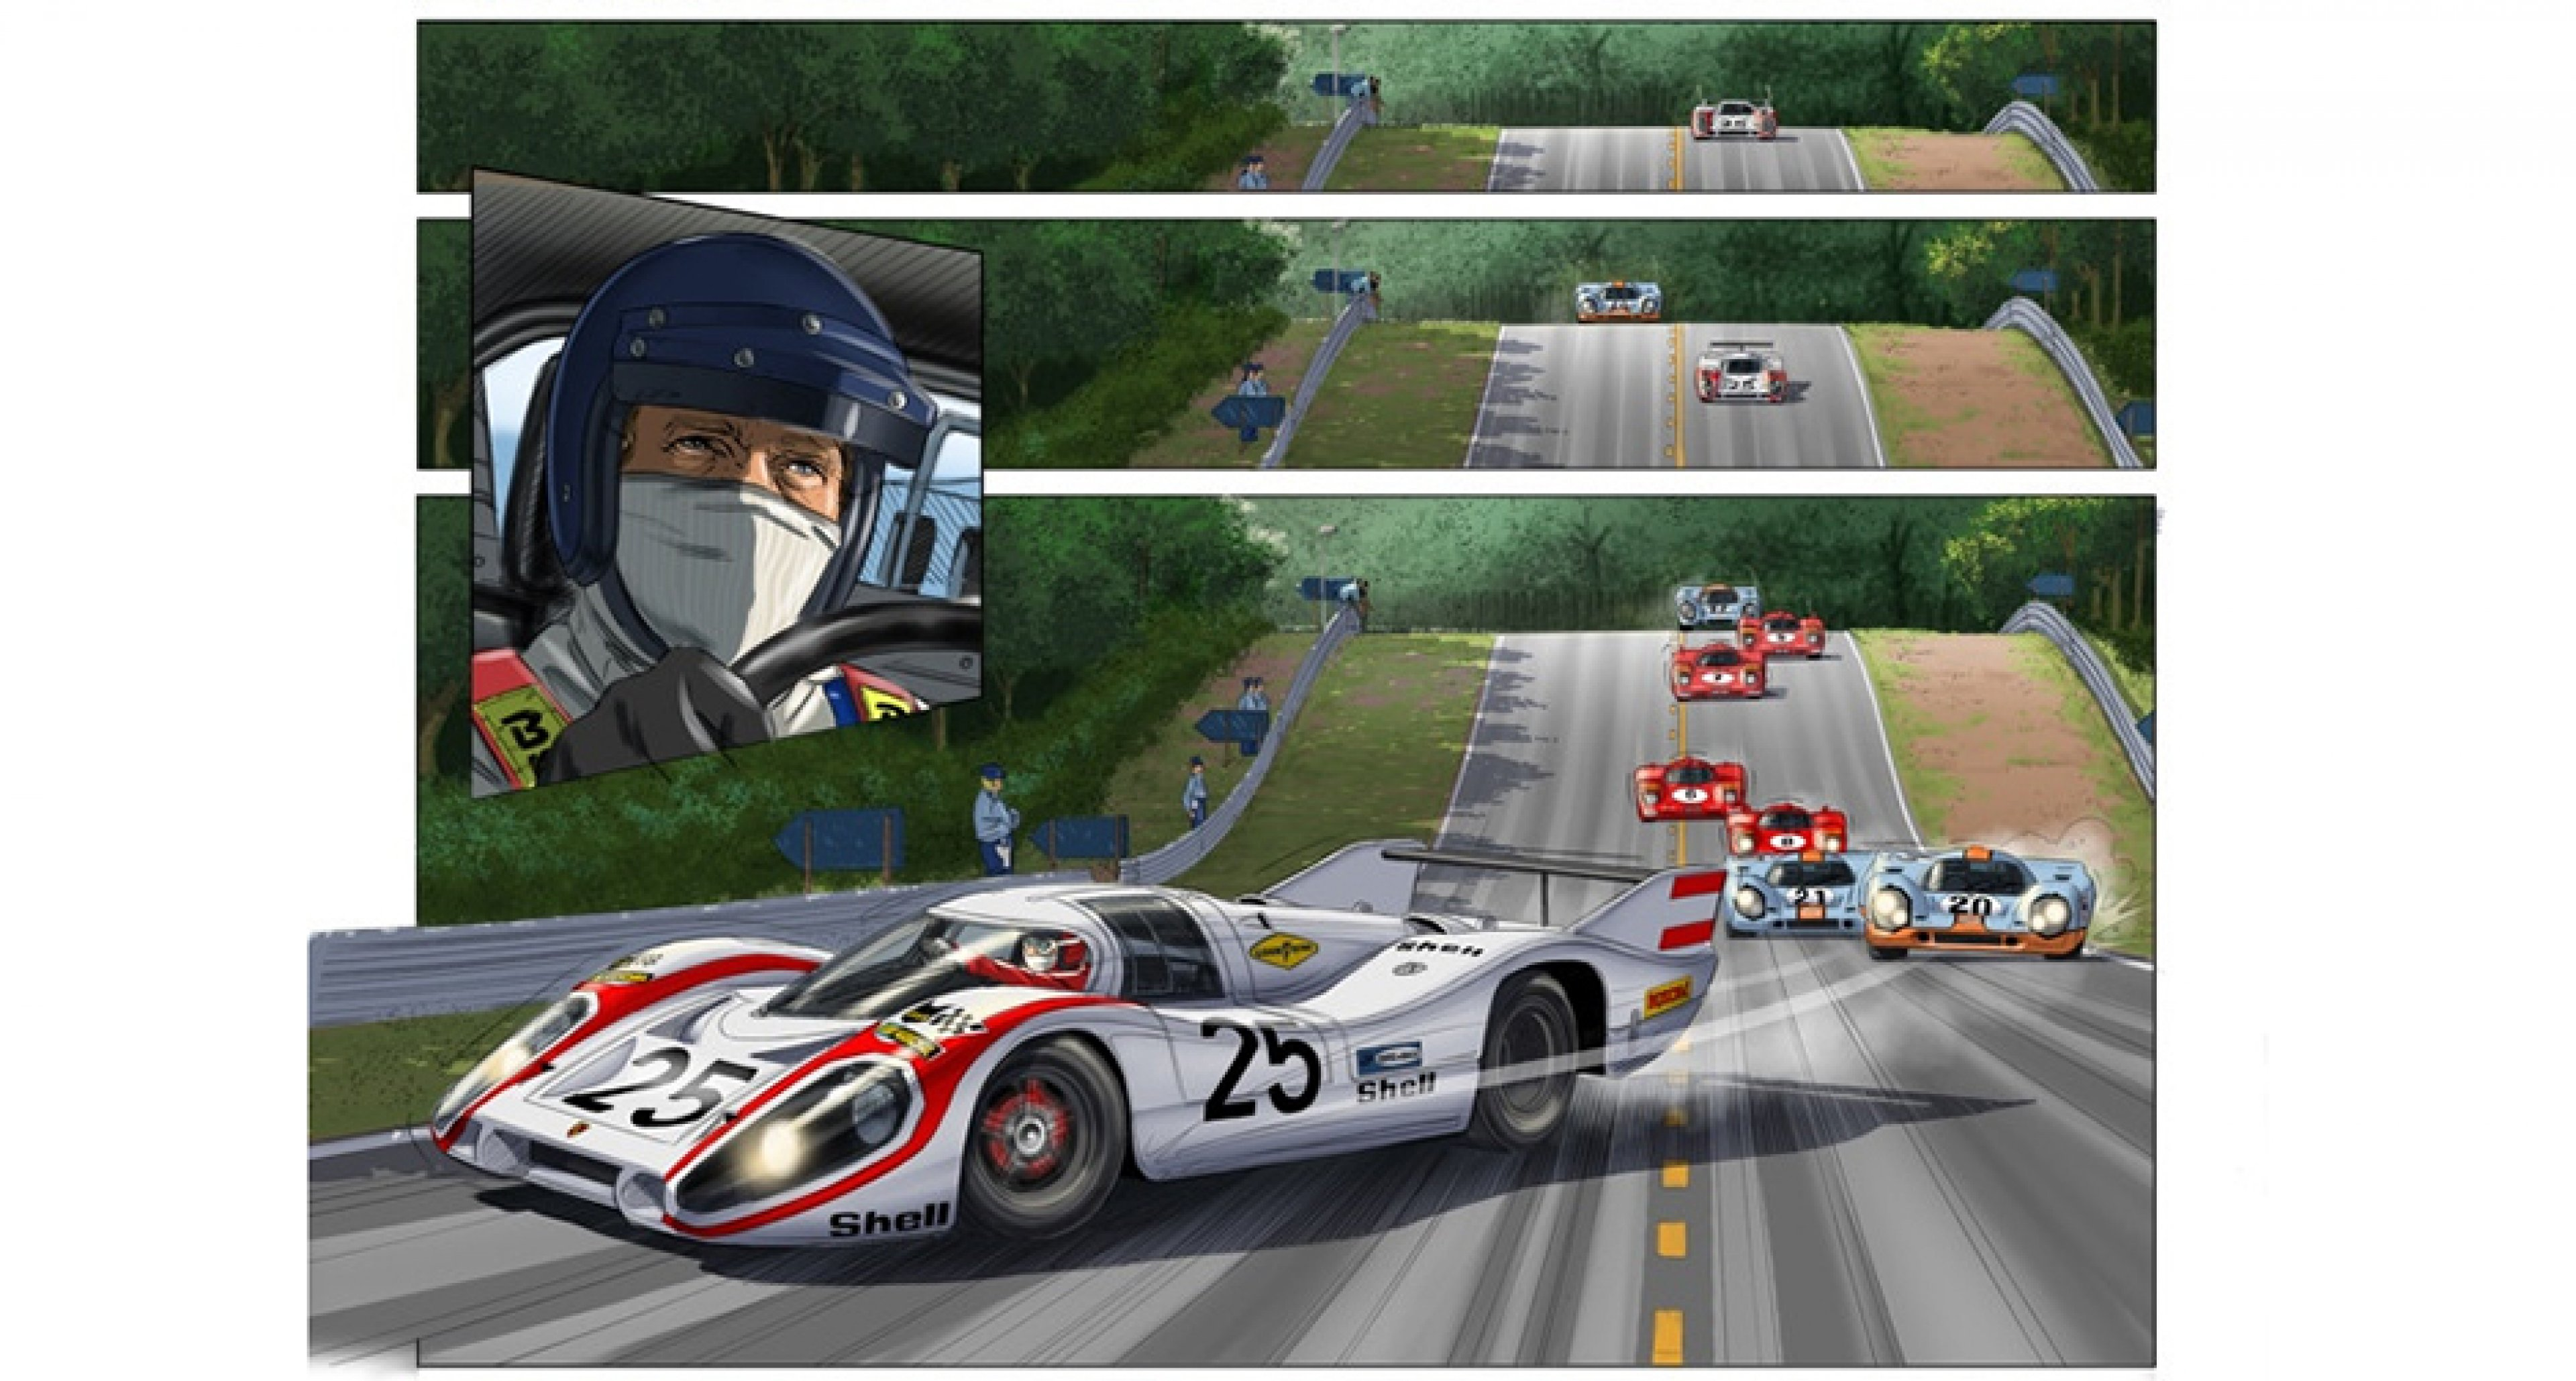 b72194bb23 This graphic adaptation of Le Mans is a new-age tribute to Steve ...